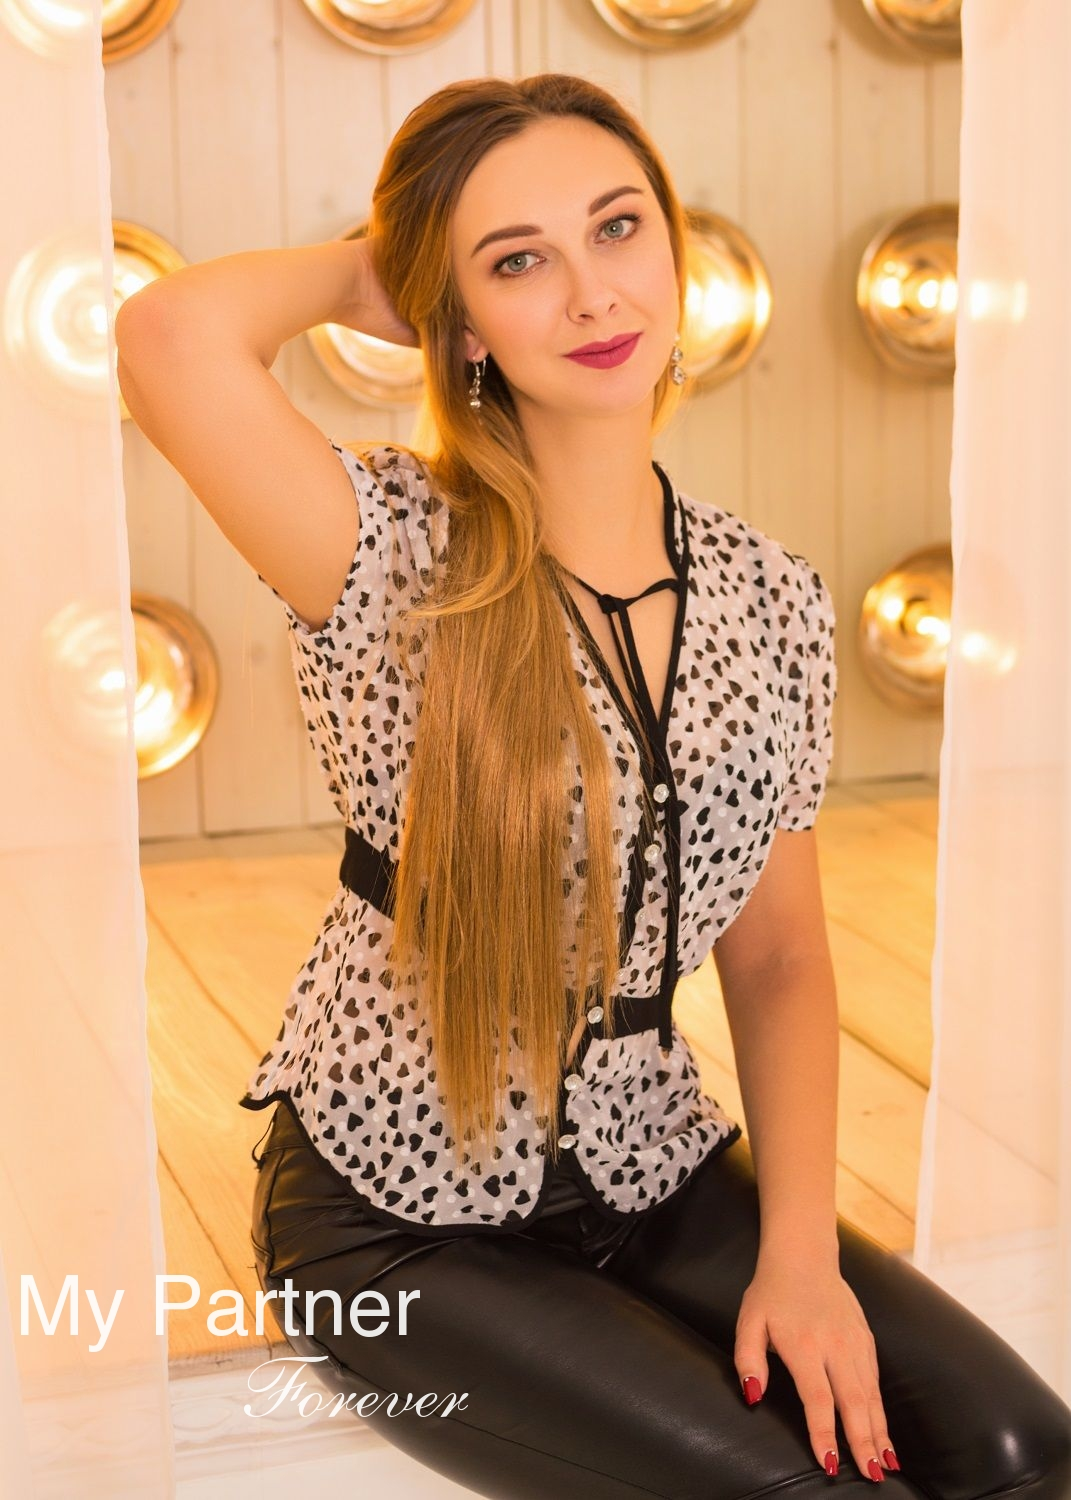 Gorgeous Girl from Ukraine - Ekaterina from Kiev, Ukraine